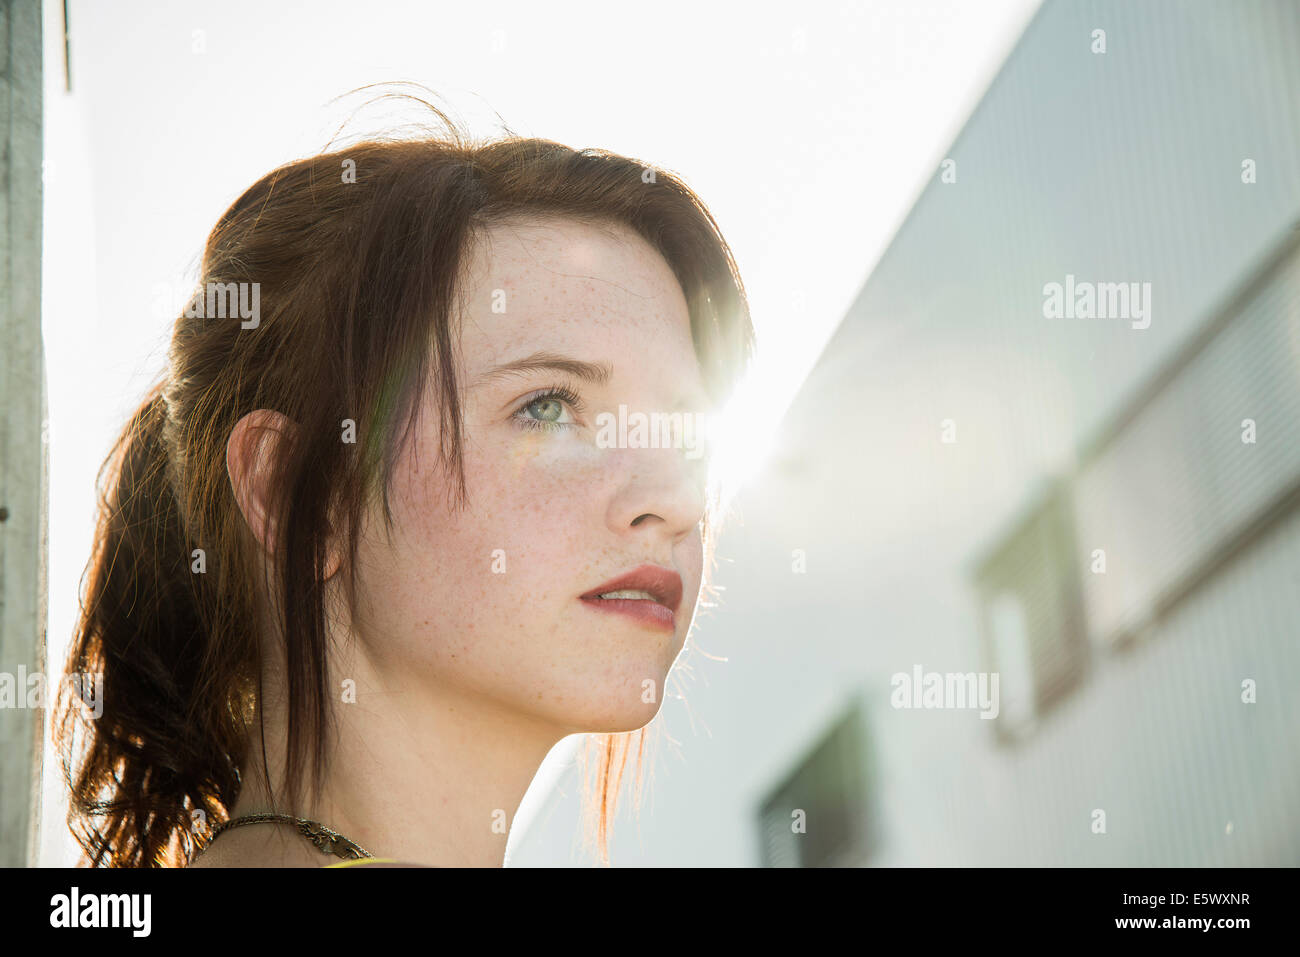 Portrait of sultry young woman on street - Stock Image